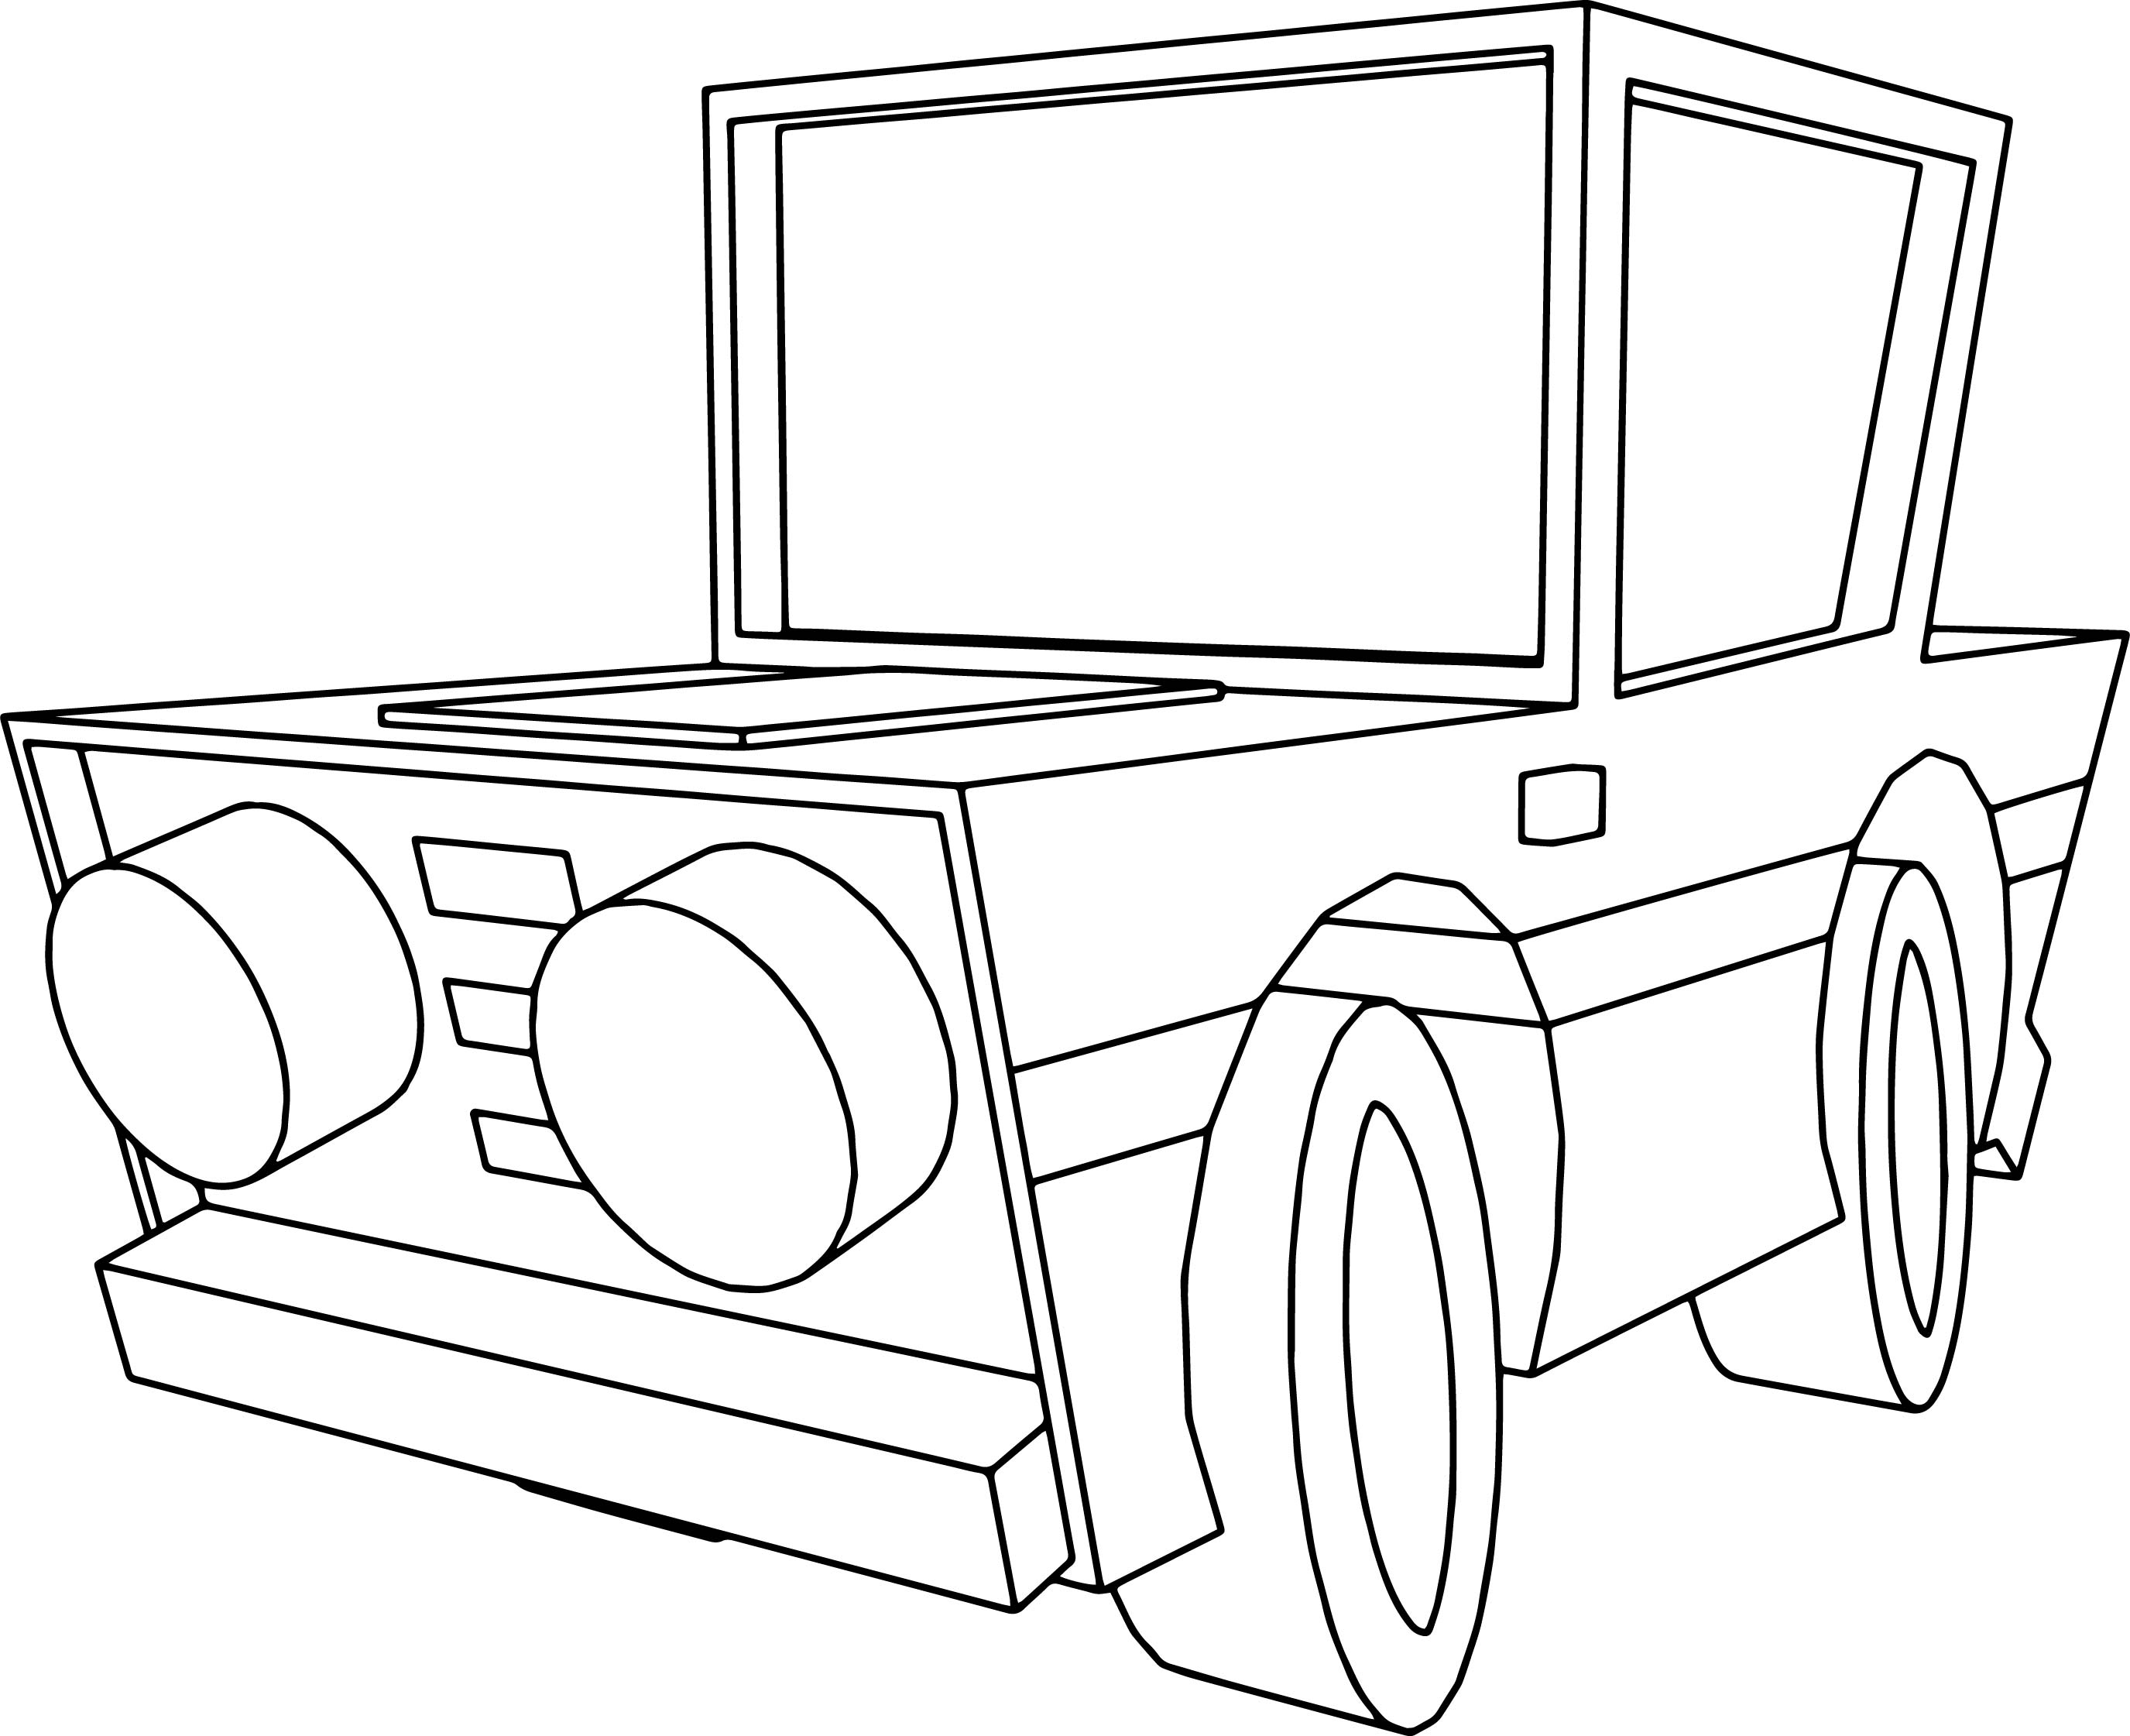 Basic Car Coloring Pages : Basic cartoon car coloring page wecoloringpage